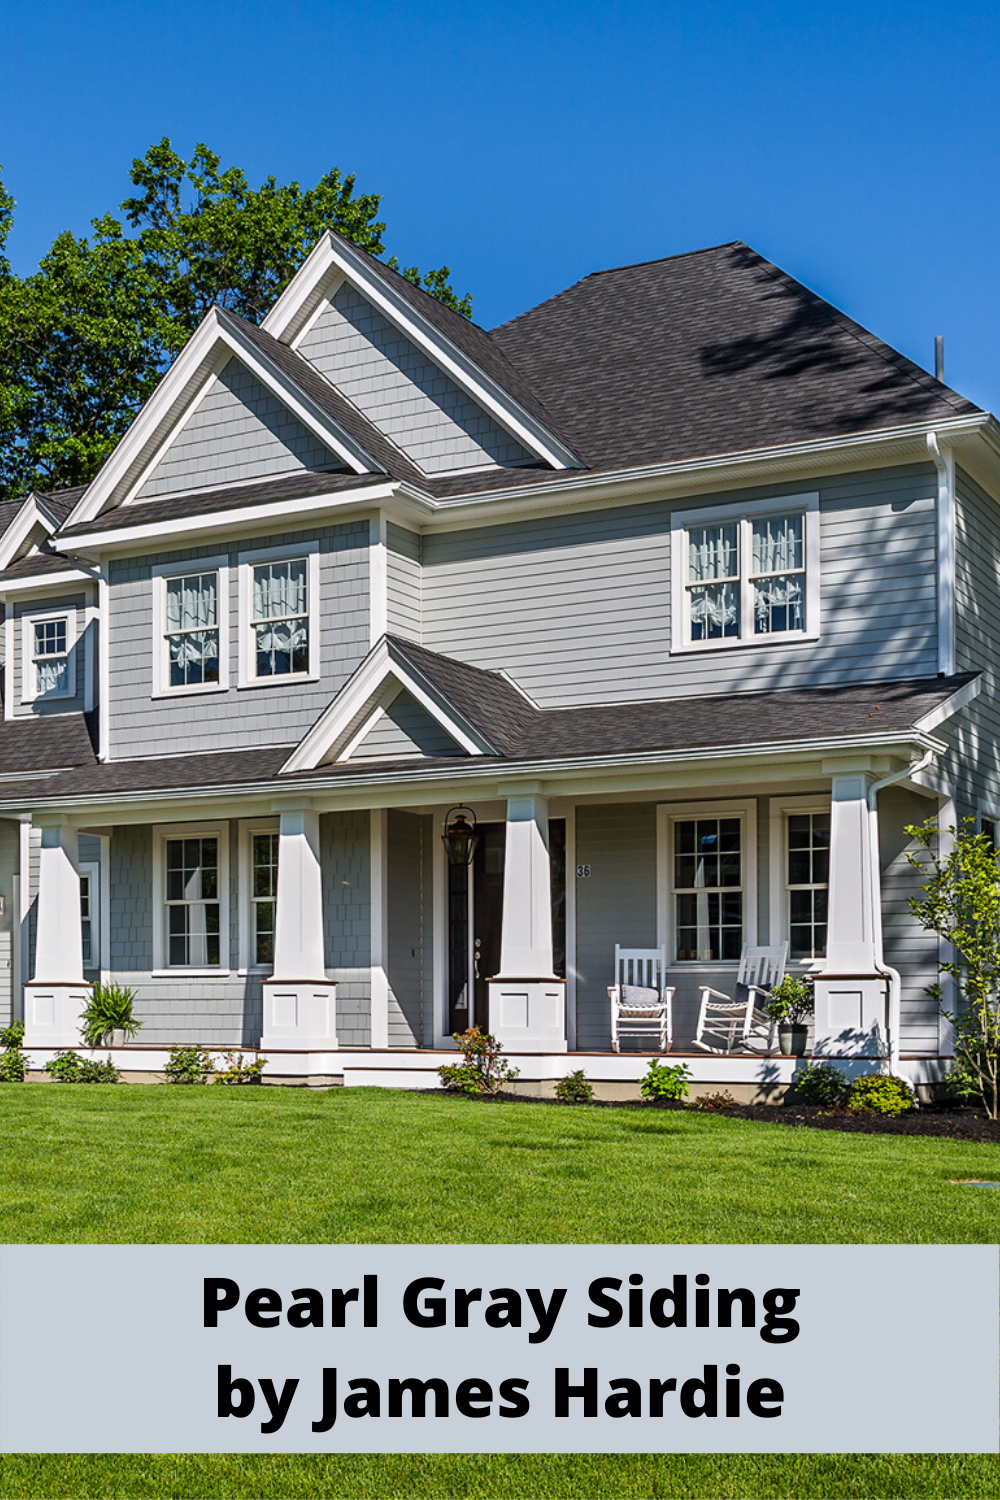 Pearl Gray Siding By James Hardie In 2020 Grey Exterior House Colors Gray House Exterior Grey Siding House